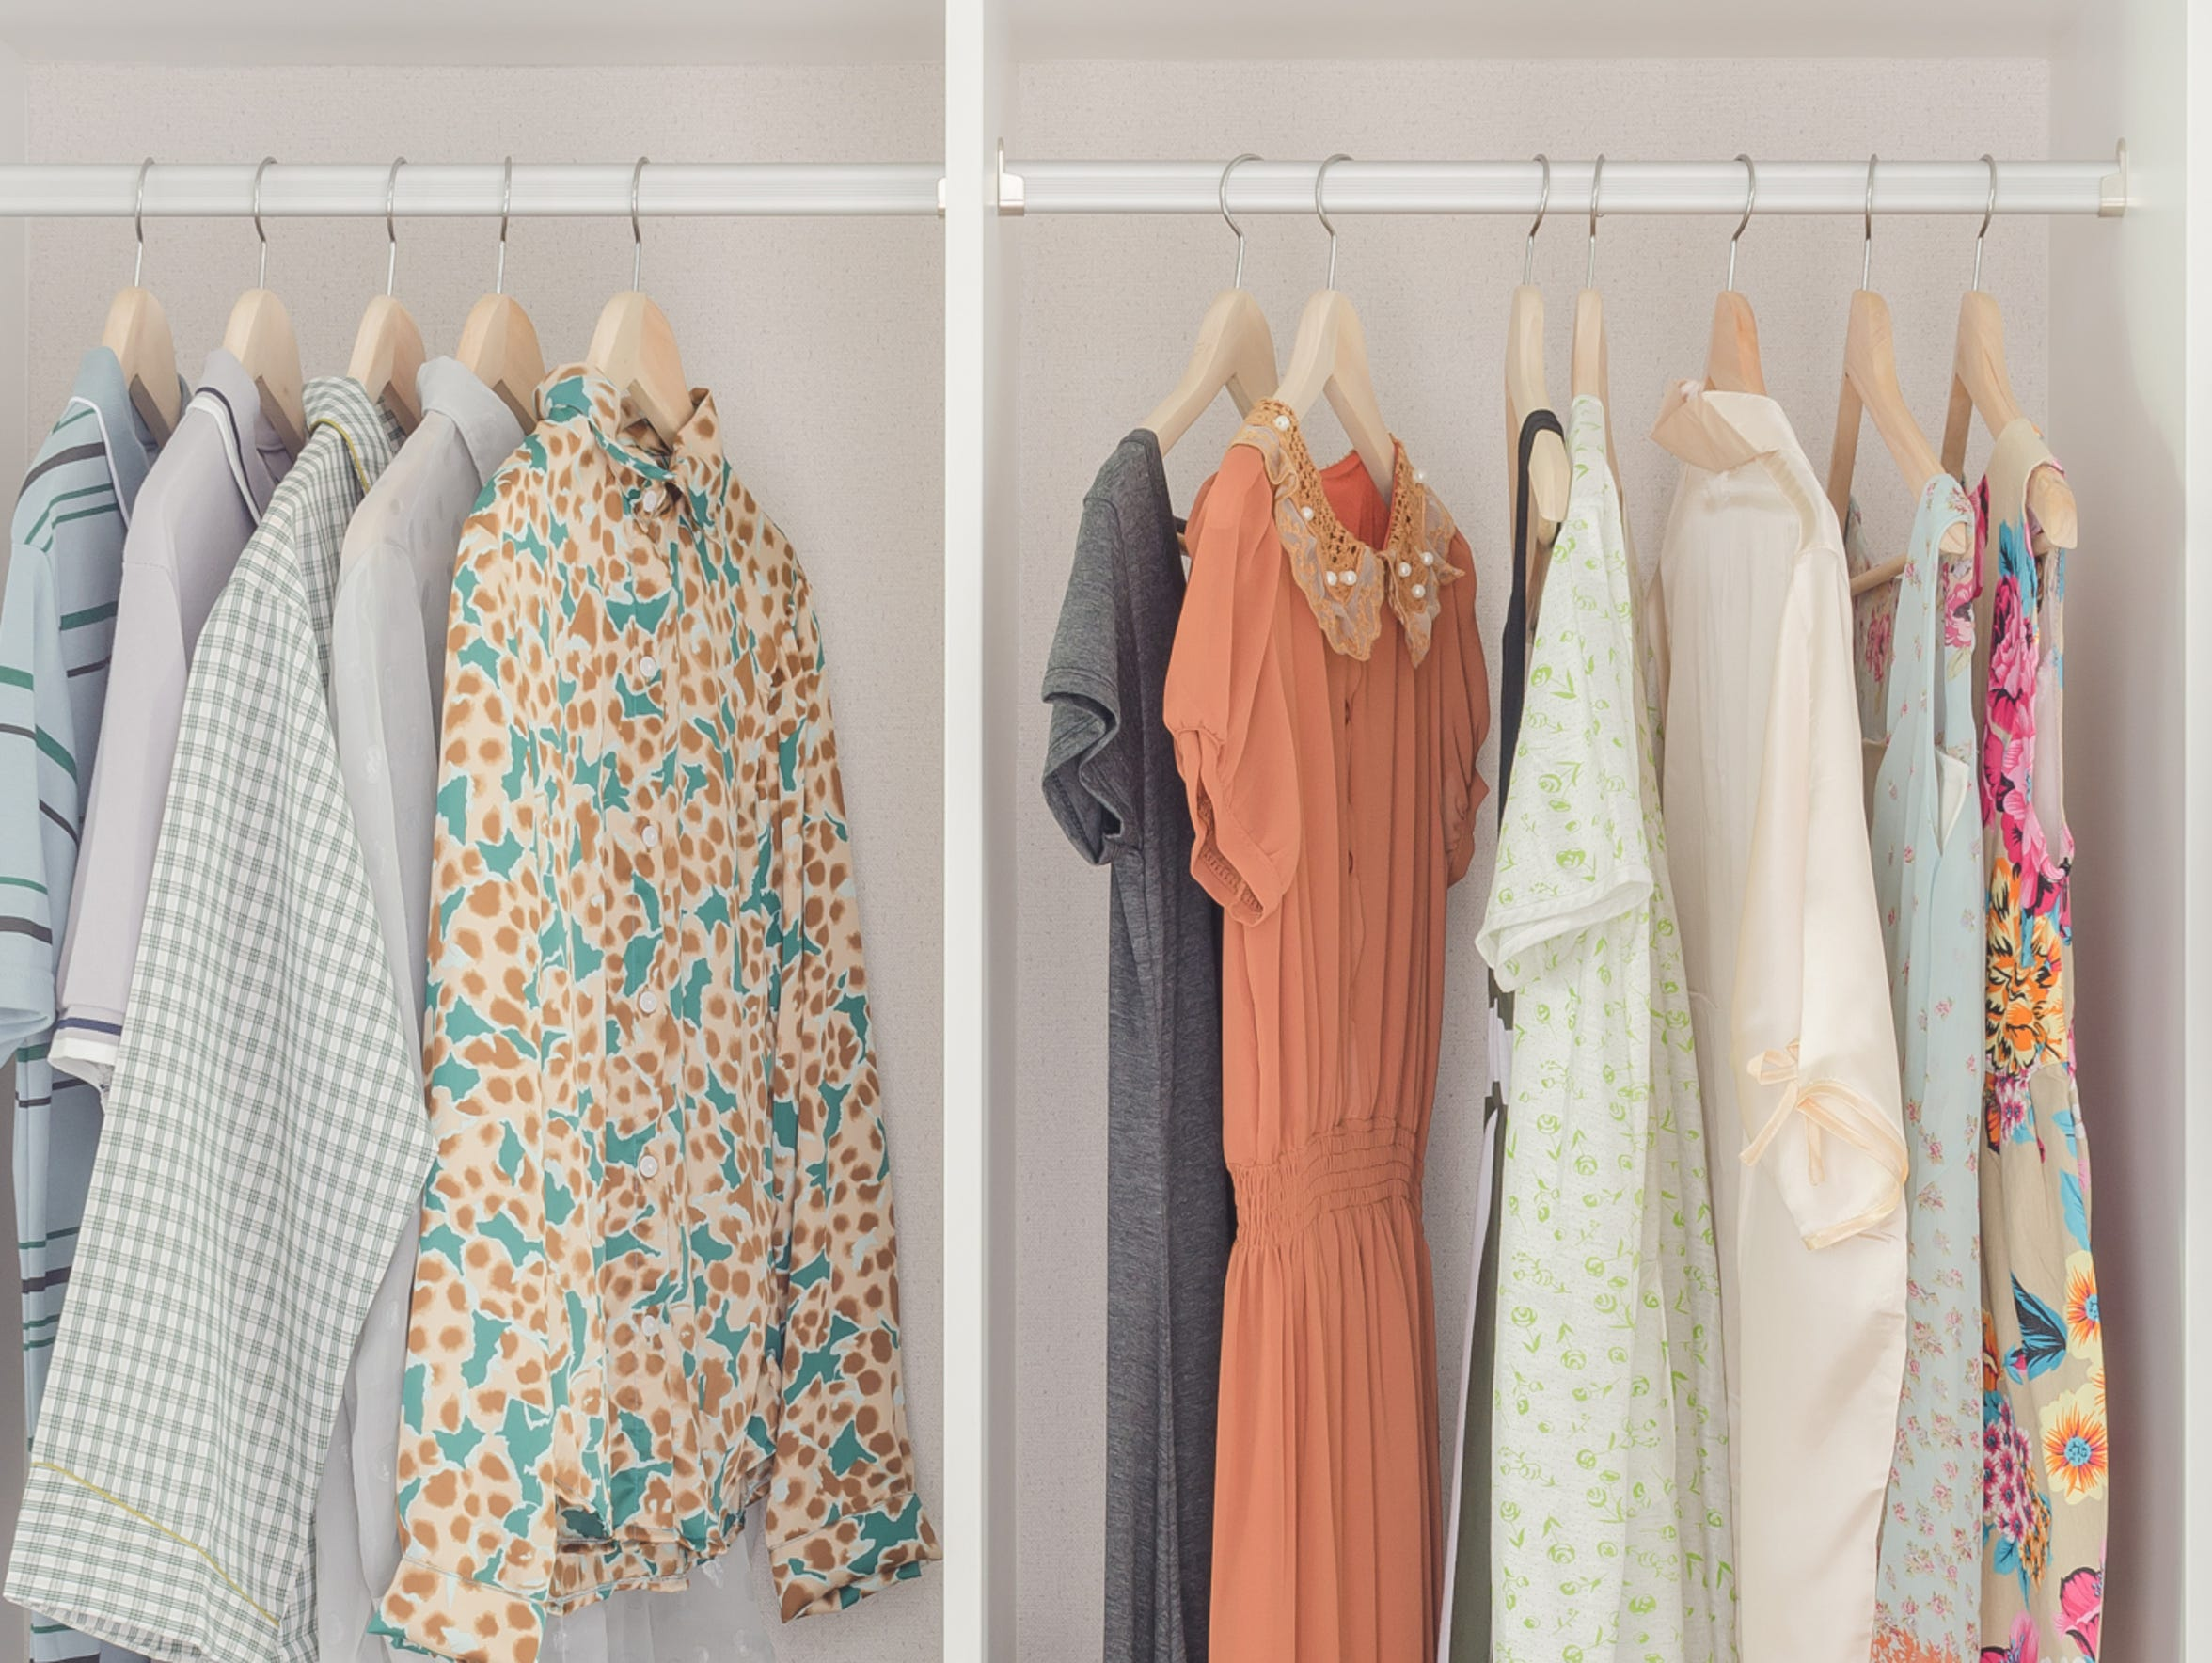 Keep your closet organized to make getting dressed